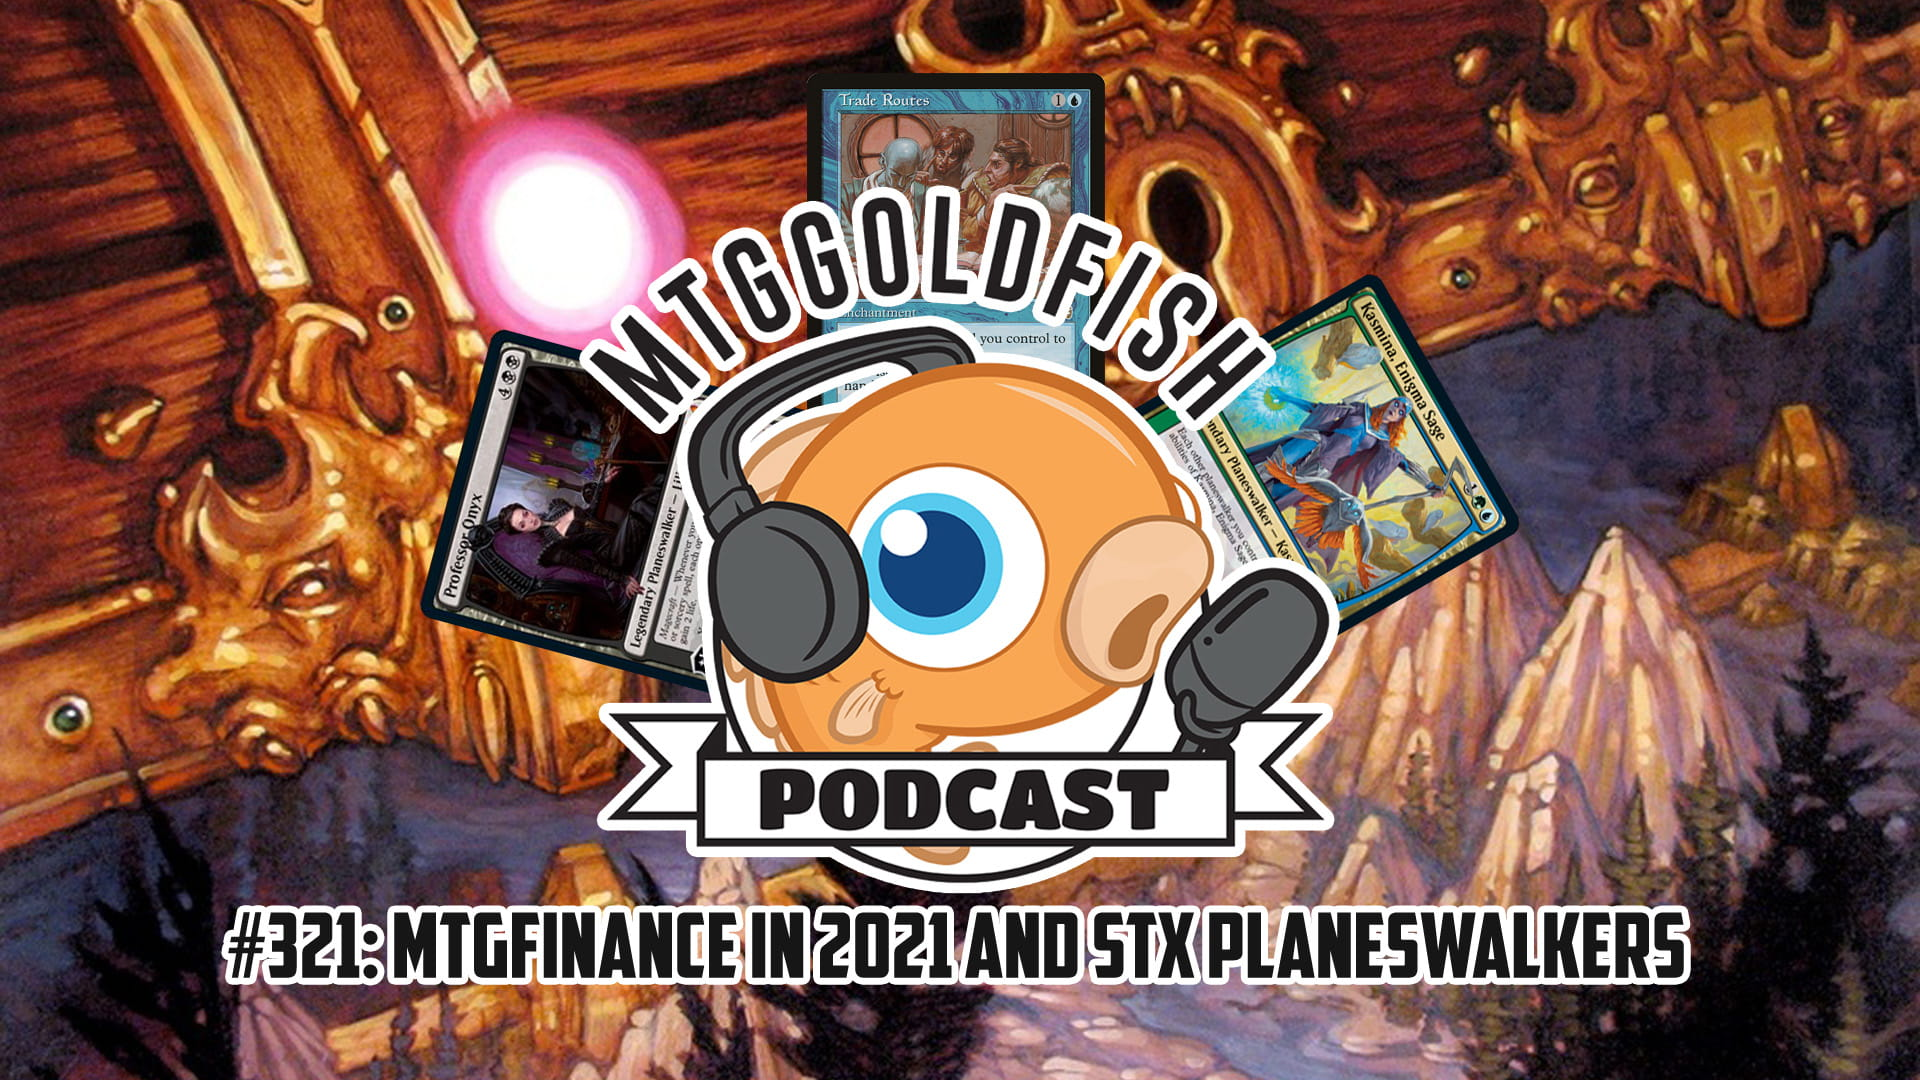 Image for Podcast 321: MTGFinance in 2021 & STX Planeswalkers